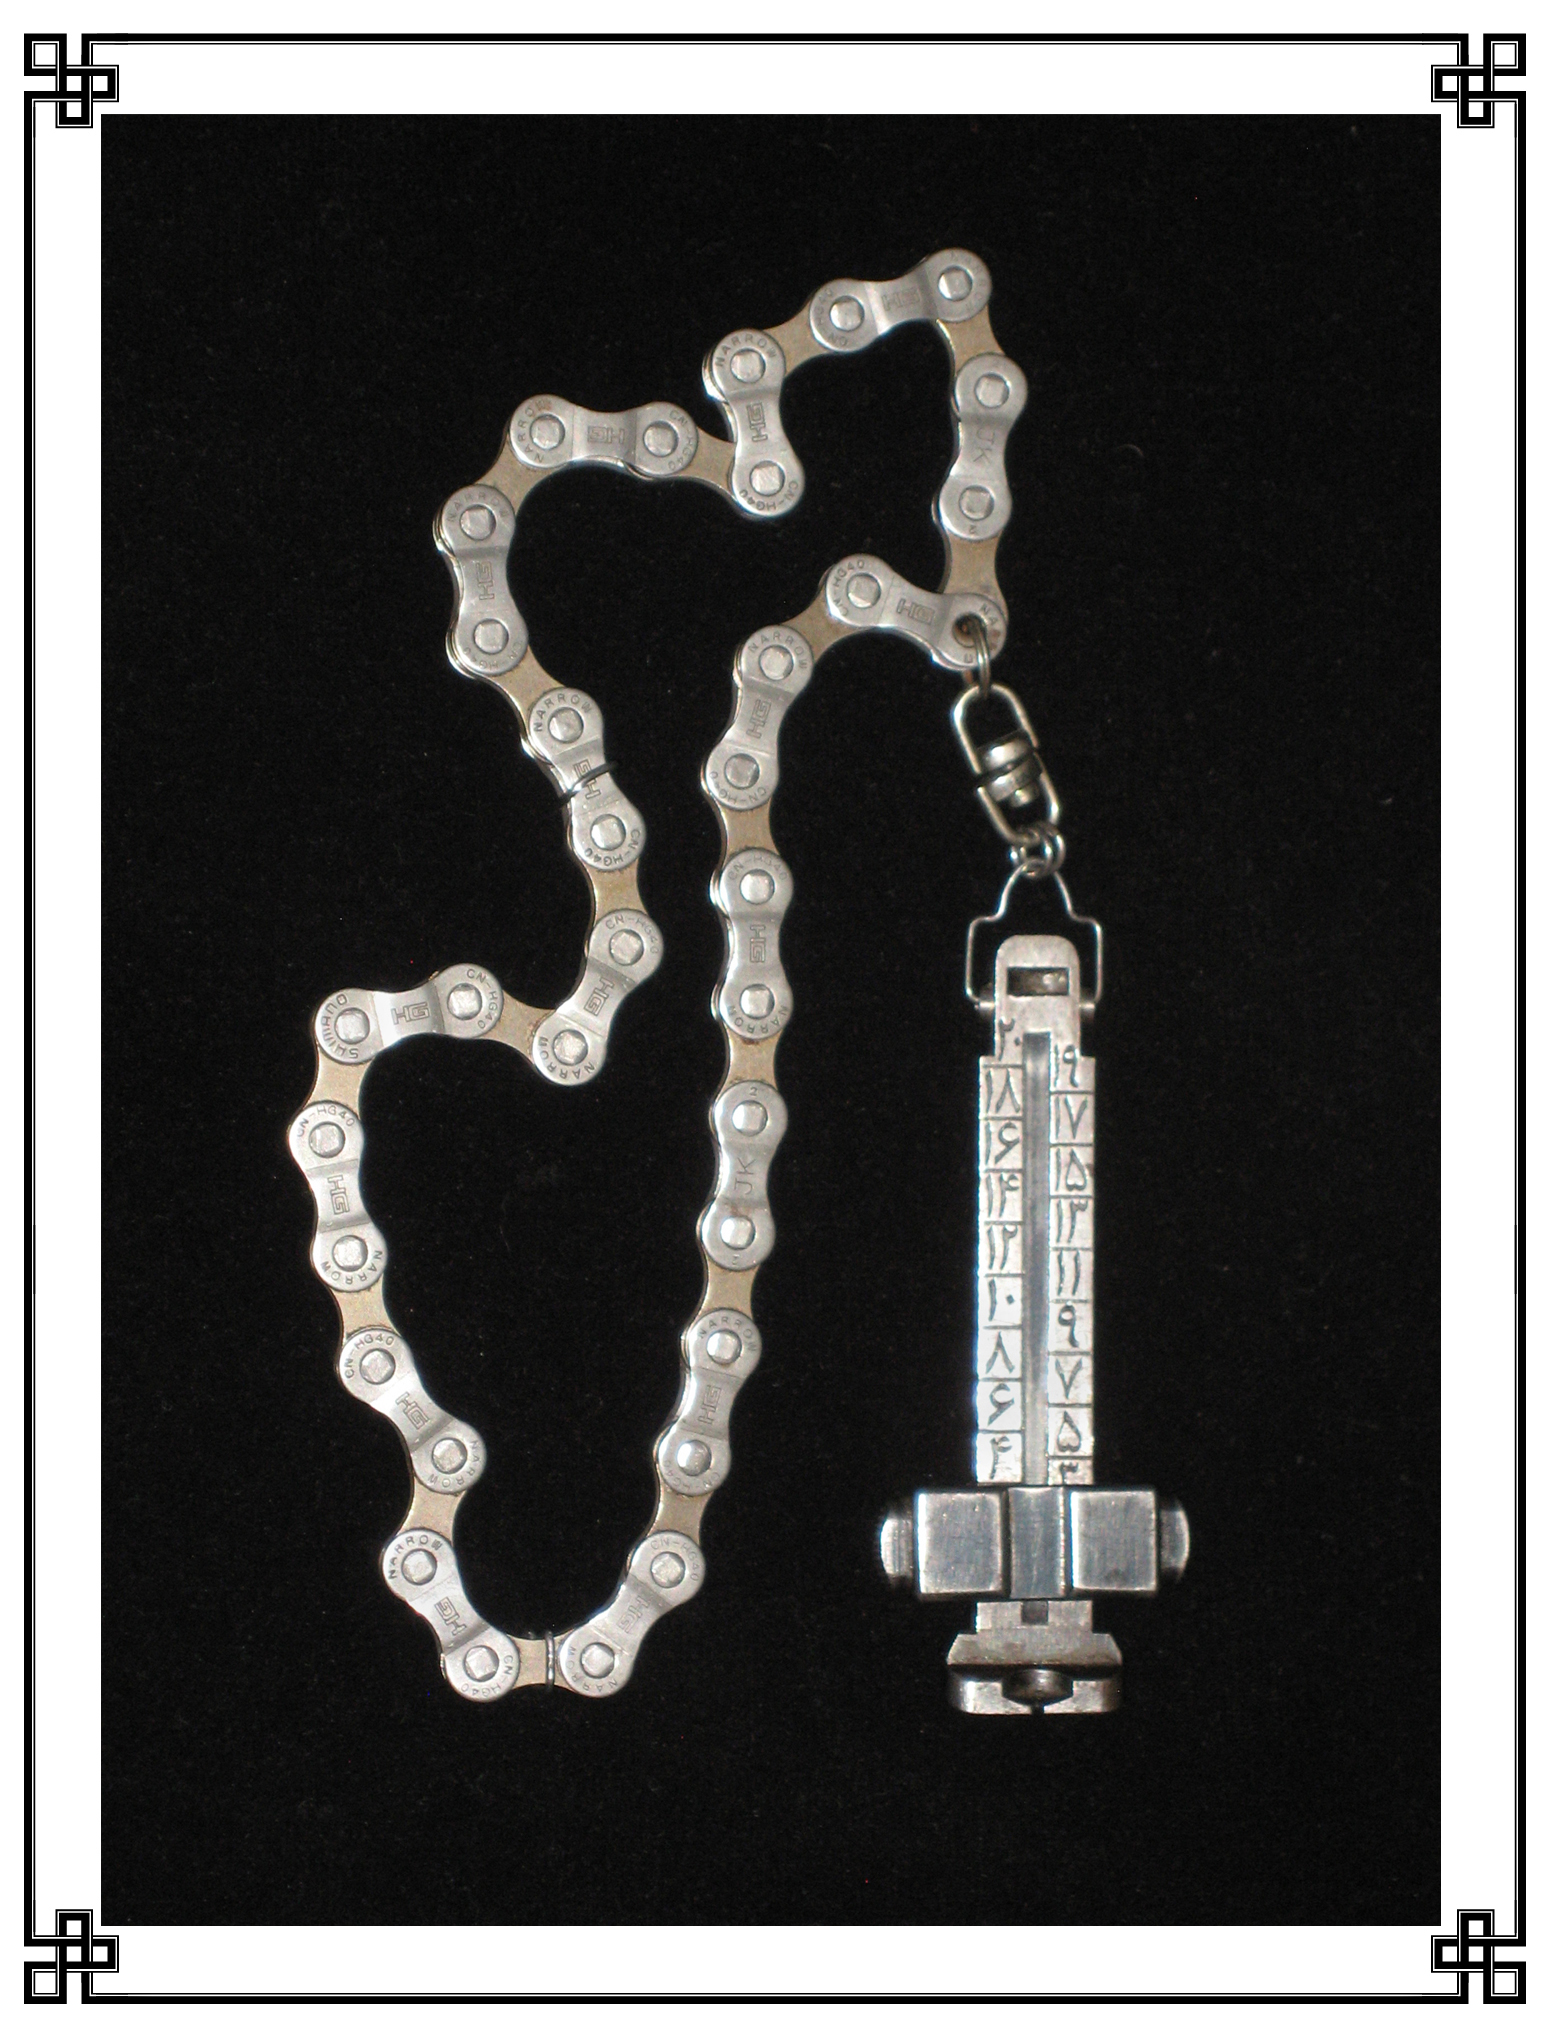 This tasbih, assembled of improvised components in the field, provided both comfort and quantitative reckoning for participants in the First Persian Antarctic Expedition. Conducted under posthumous imperial sponsorship of Qajar Shah Nasr-ed-Din, the expedition effectively demonstrated the suitability of Bactrian camels for prolonged polar excursions. It proved rather less successful, however, at such tasks as locating Makkah upon establishing camp at the South Pole.  Such importation of exotic fauna, it must be noted, was itself a rare accomplishment. Continental authorities are notoriously zealous in their defense against foreign contagion and infestations, as evidenced in the photograph below of the Australasian Antarctic Expedition's rigorous pre-disembarkation screening by a wary local quarantine agent.